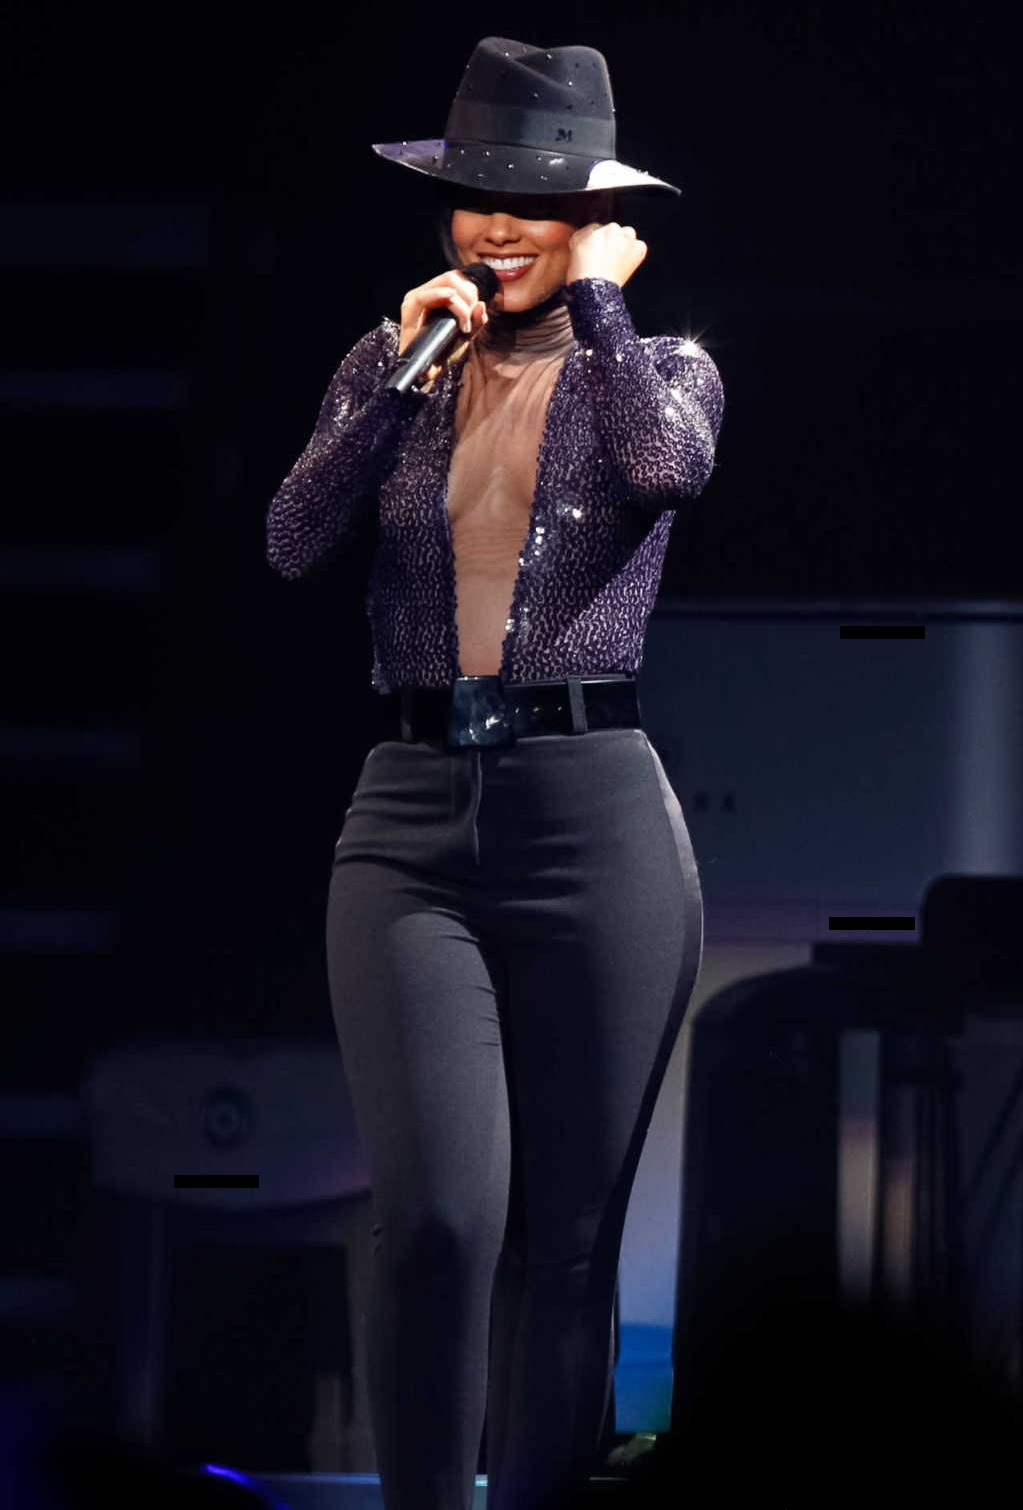 Alicia Keys Performing at the Staples Center